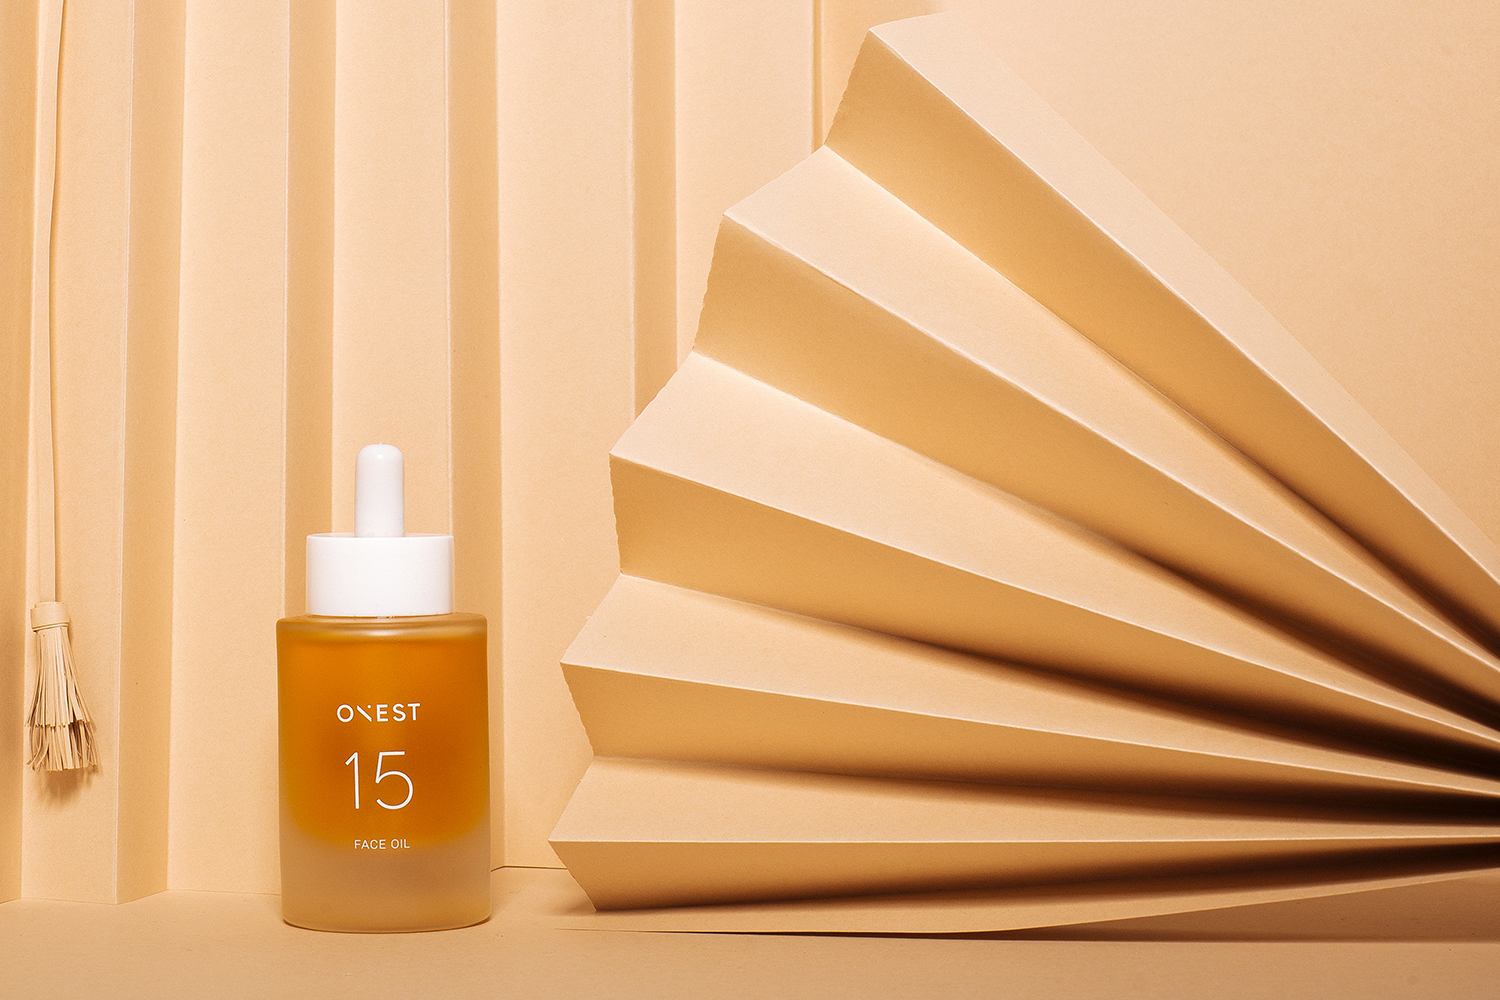 ONEST cosmetics for Theó & Co.